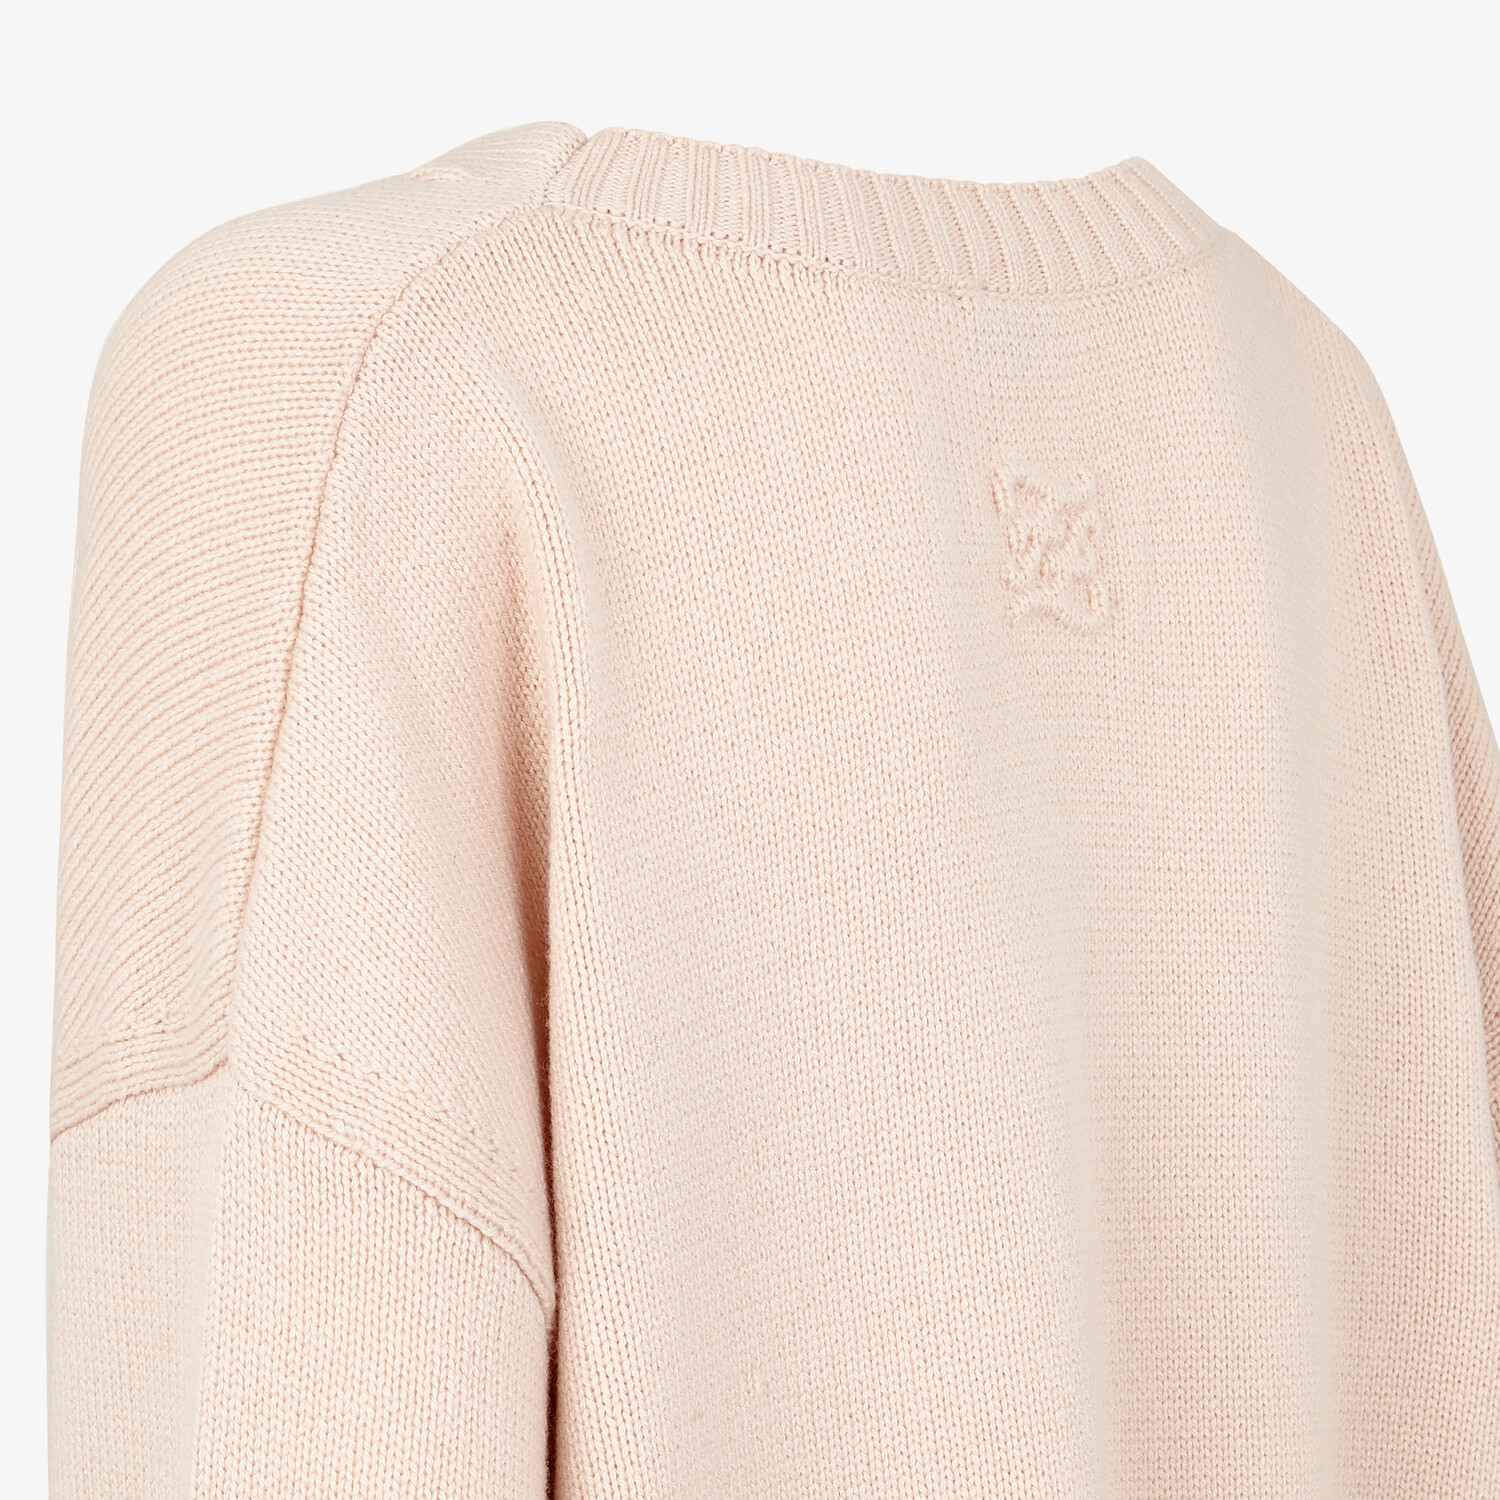 FENDI SWEATER - Pink cashmere sweater - view 3 detail